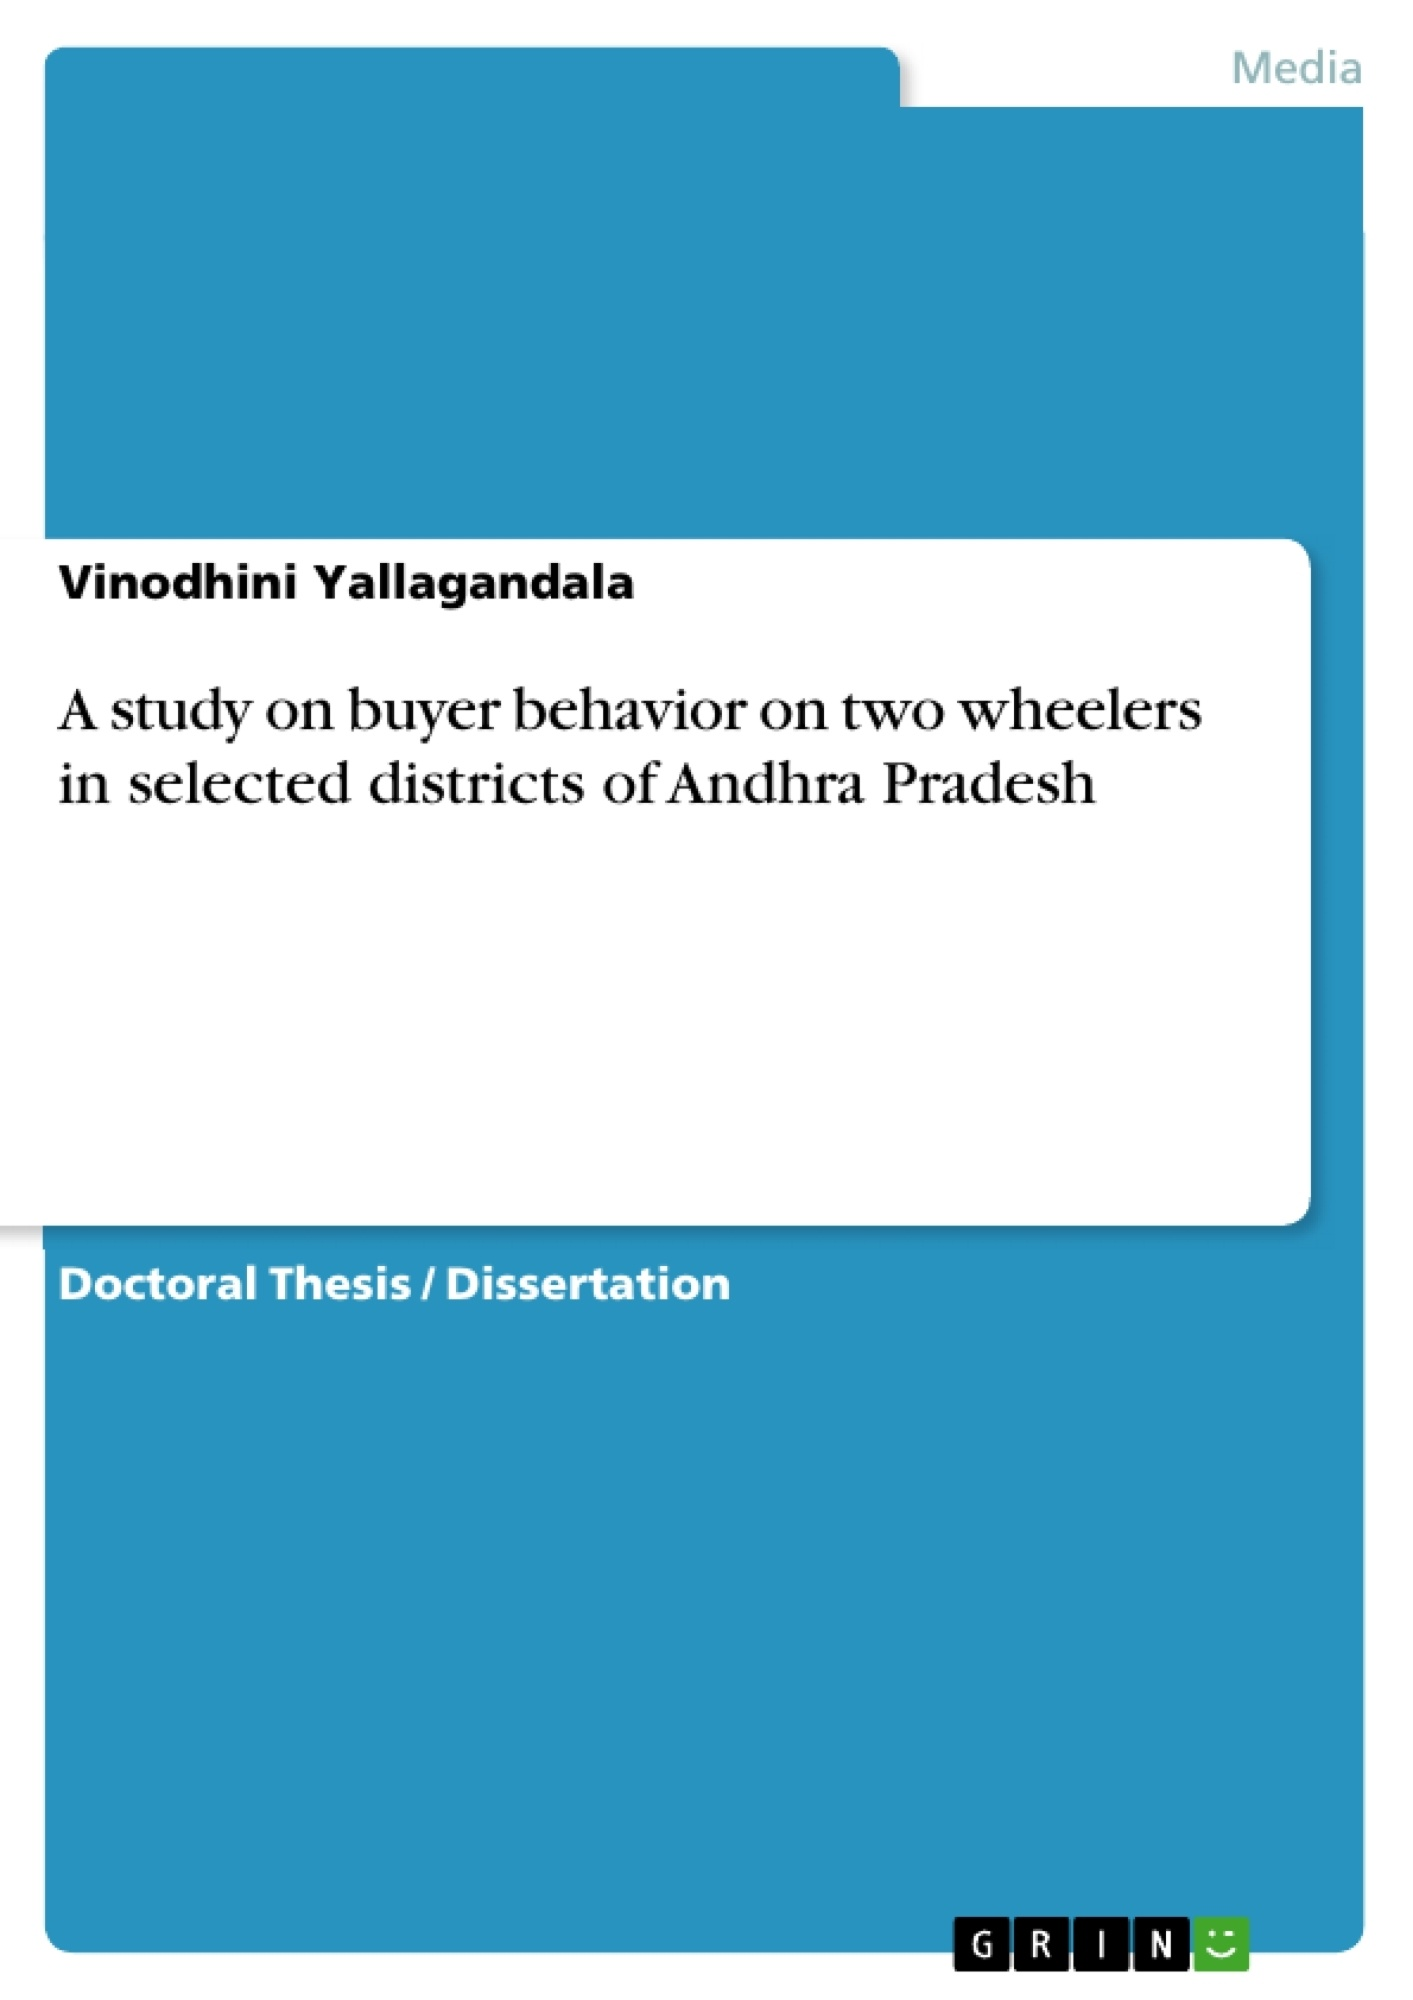 Title: A study on buyer behavior on two wheelers in selected districts of Andhra Pradesh